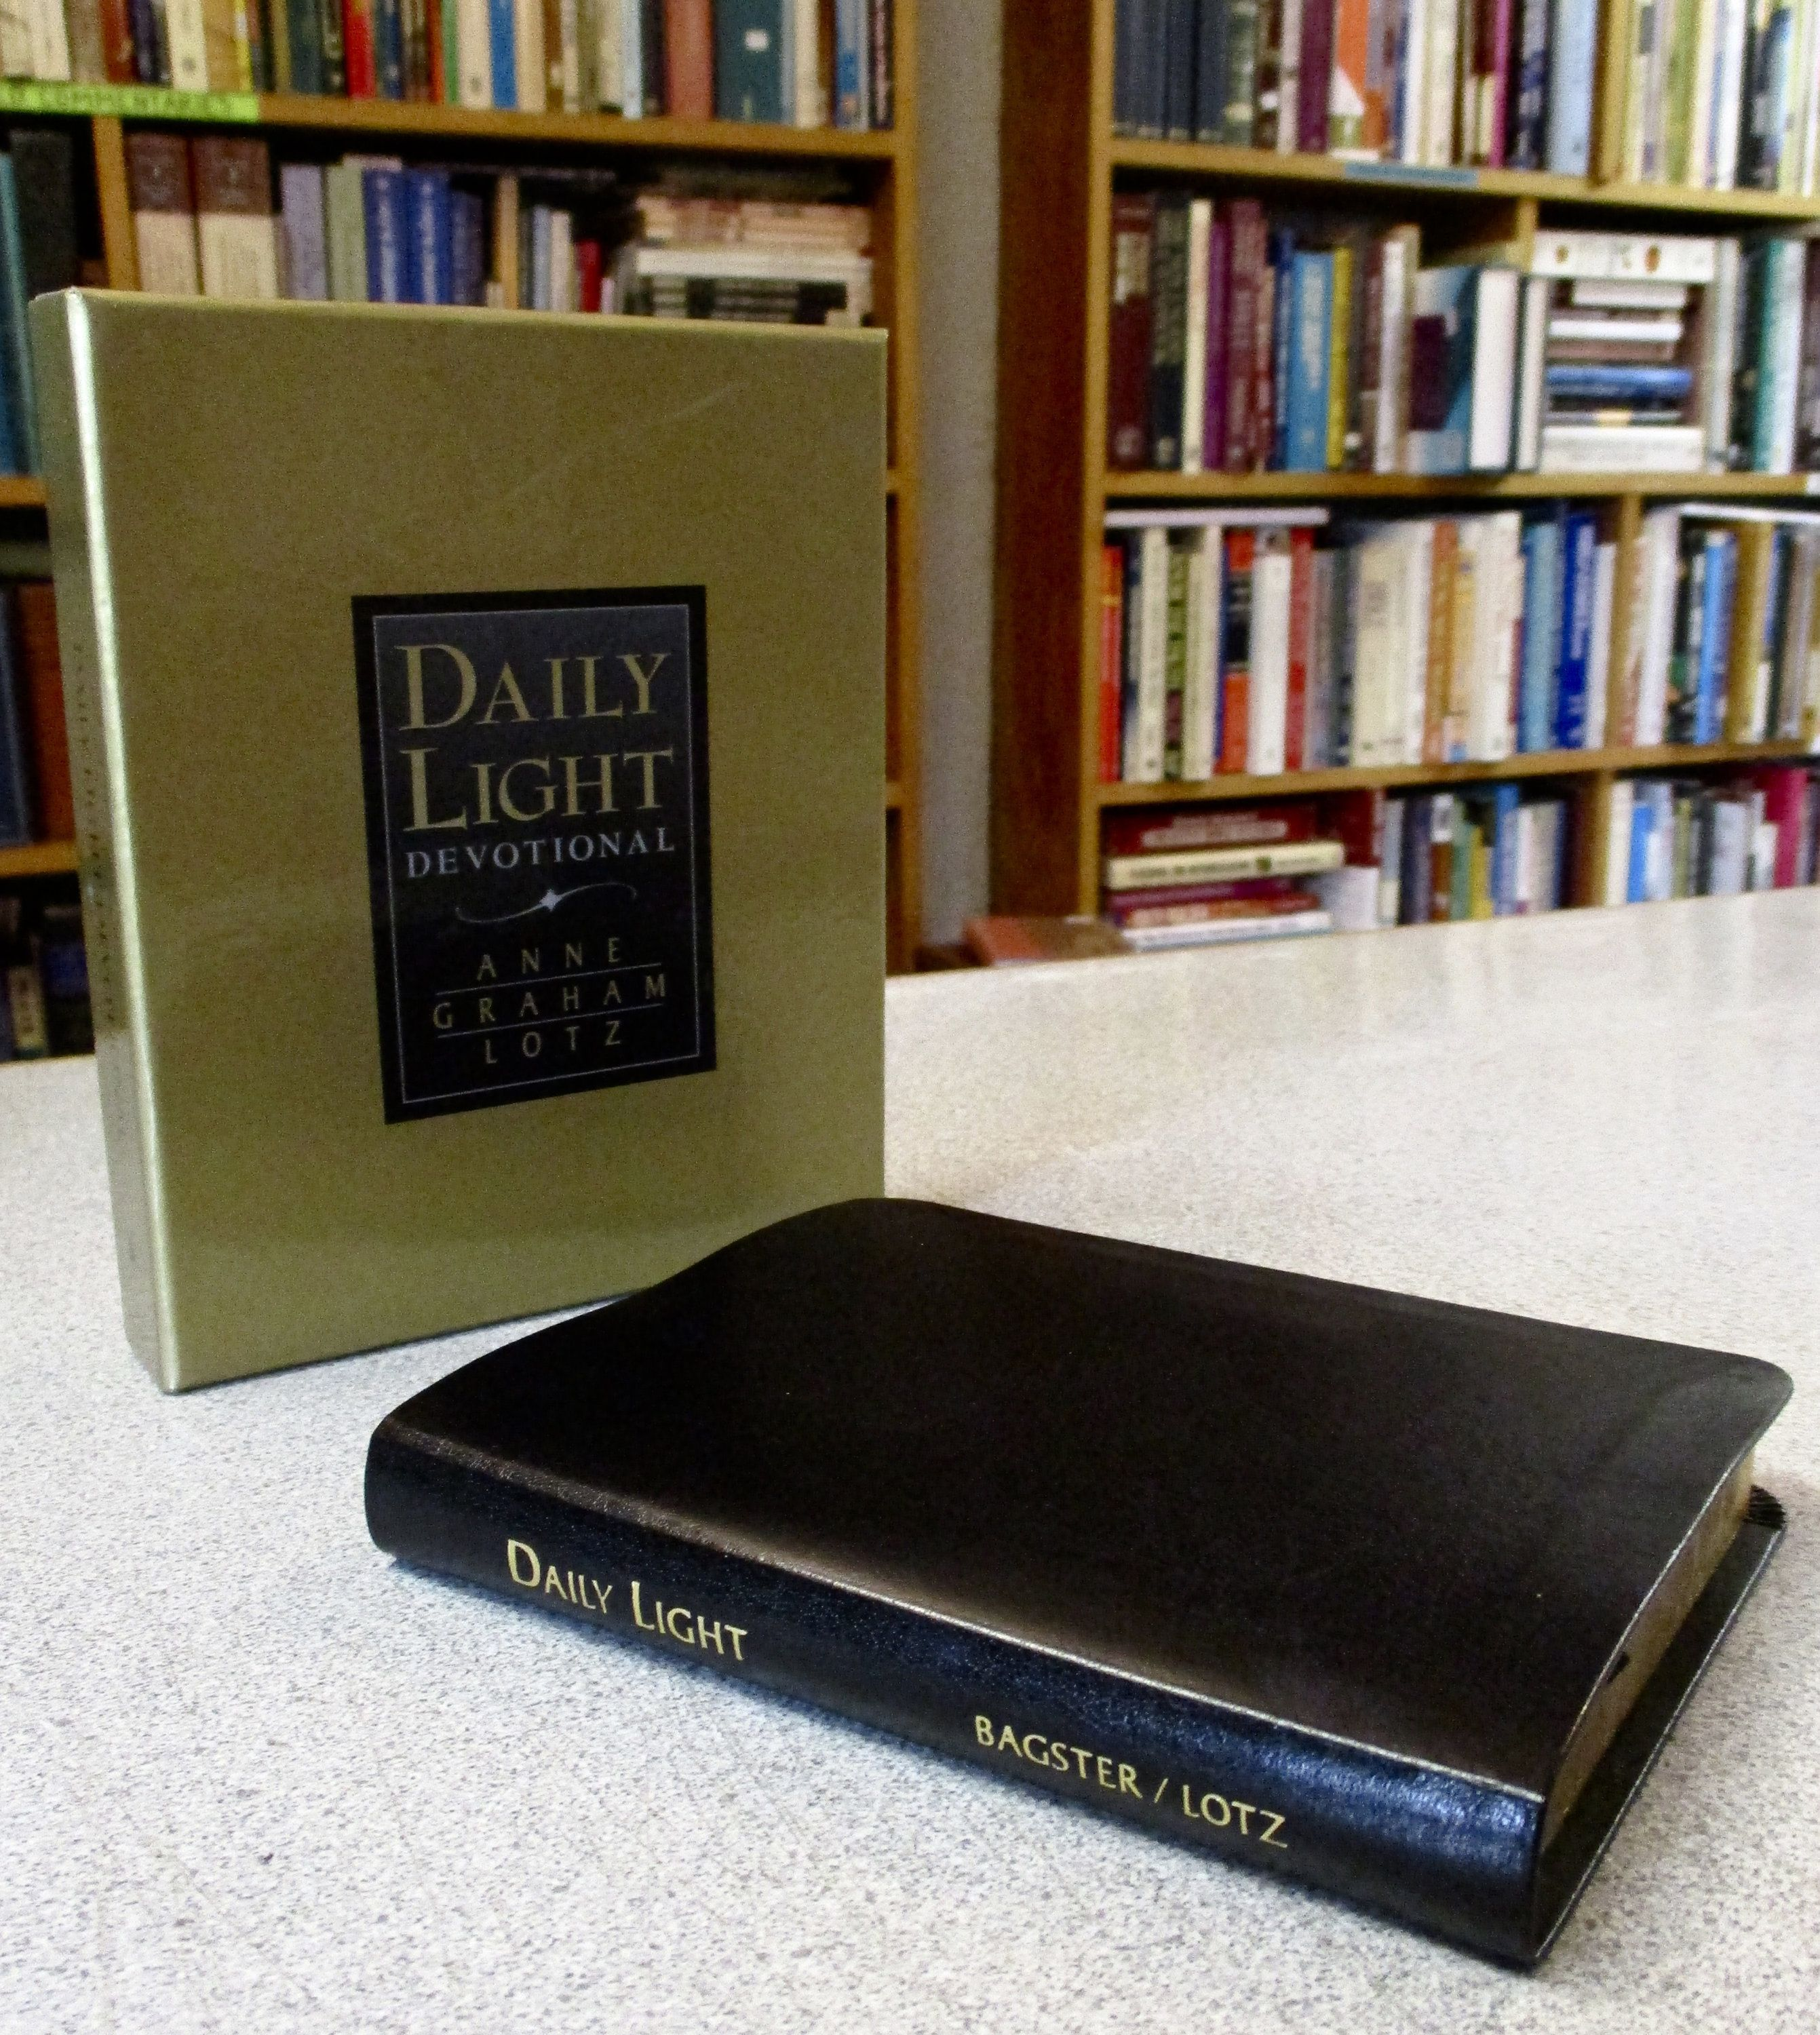 Personalized DAILY LIGHT Devotional NKJV Anne Graham Lotz Custom Imprinted  With Your Name Black Leather Daily